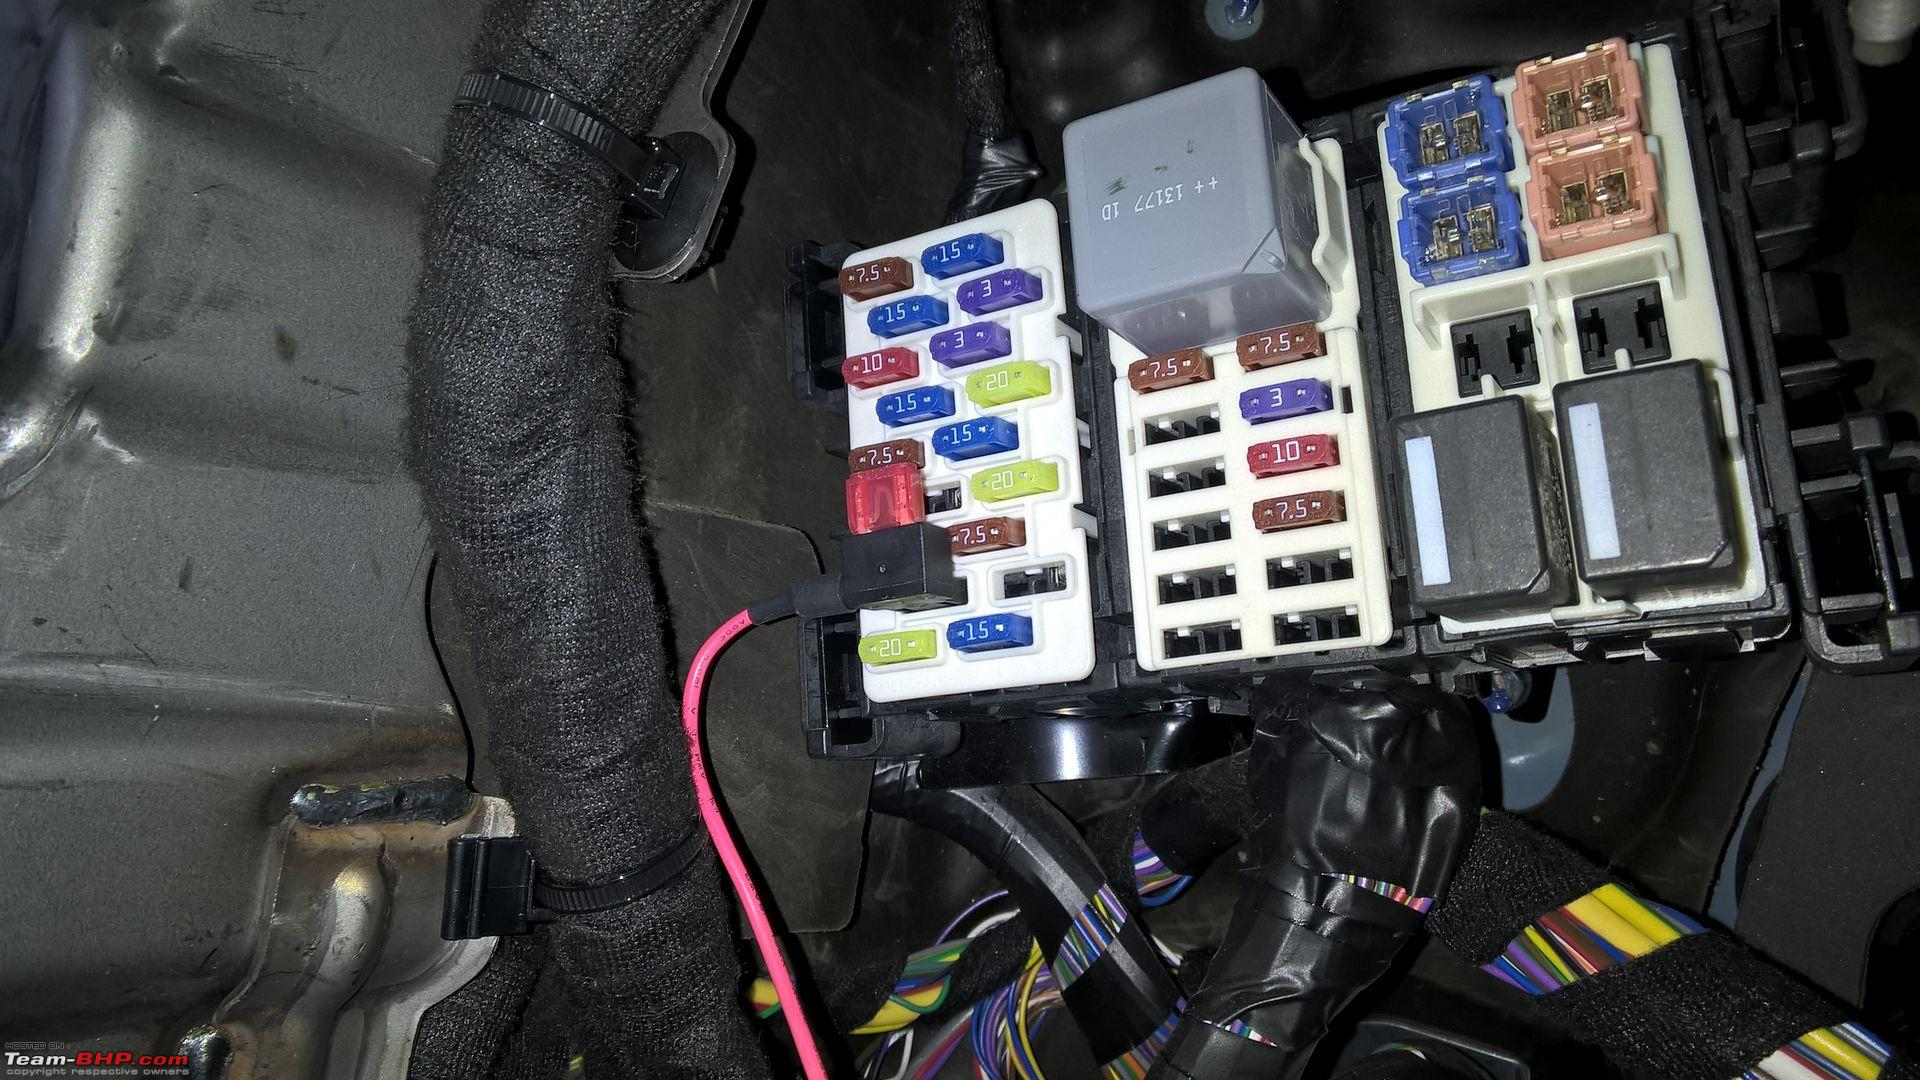 1405246d1439985339 diy hardwiring your dashcam fuse tap fitted best way to tap into car fuse box diy fuse tap \u2022 wiring diagrams how to tap into fuse box for power at gsmx.co